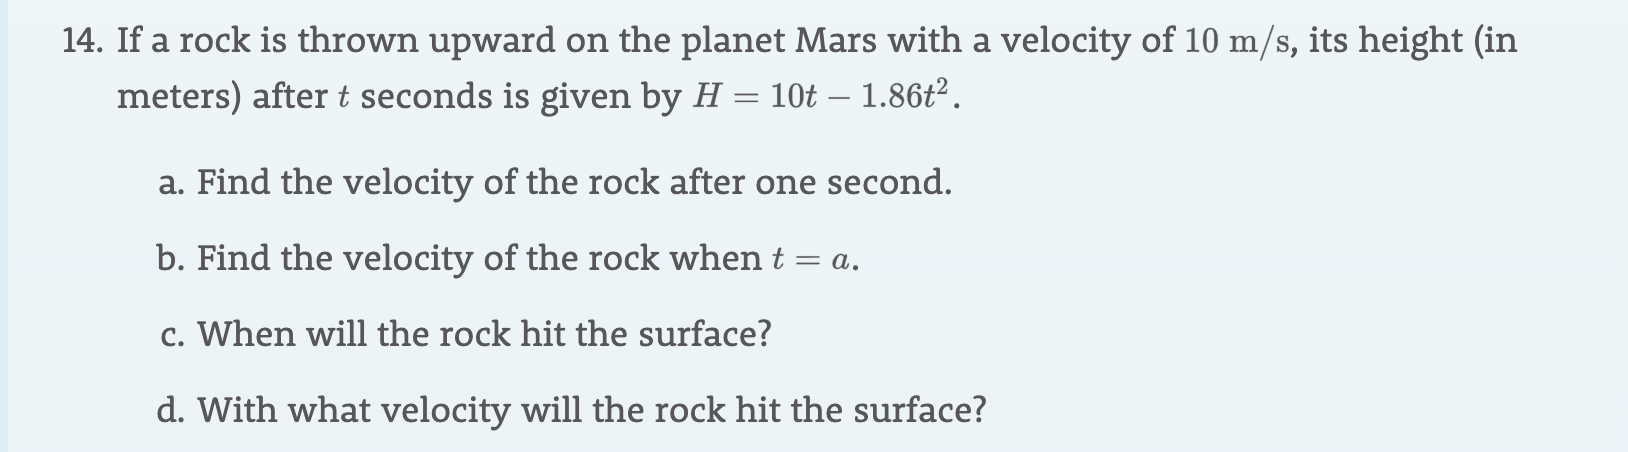 14. If a rock is thrown upward on the planet Mars with a velocity of 10 m/s, its height (in meters) after t seconds is given by H = 10t - 1.86t2 a. Find the velocity of the rock after one second. b. Find the velocity of the rock when t = a c. When will the rock hit the surface? d. With what velocity will the rock hit the surface?